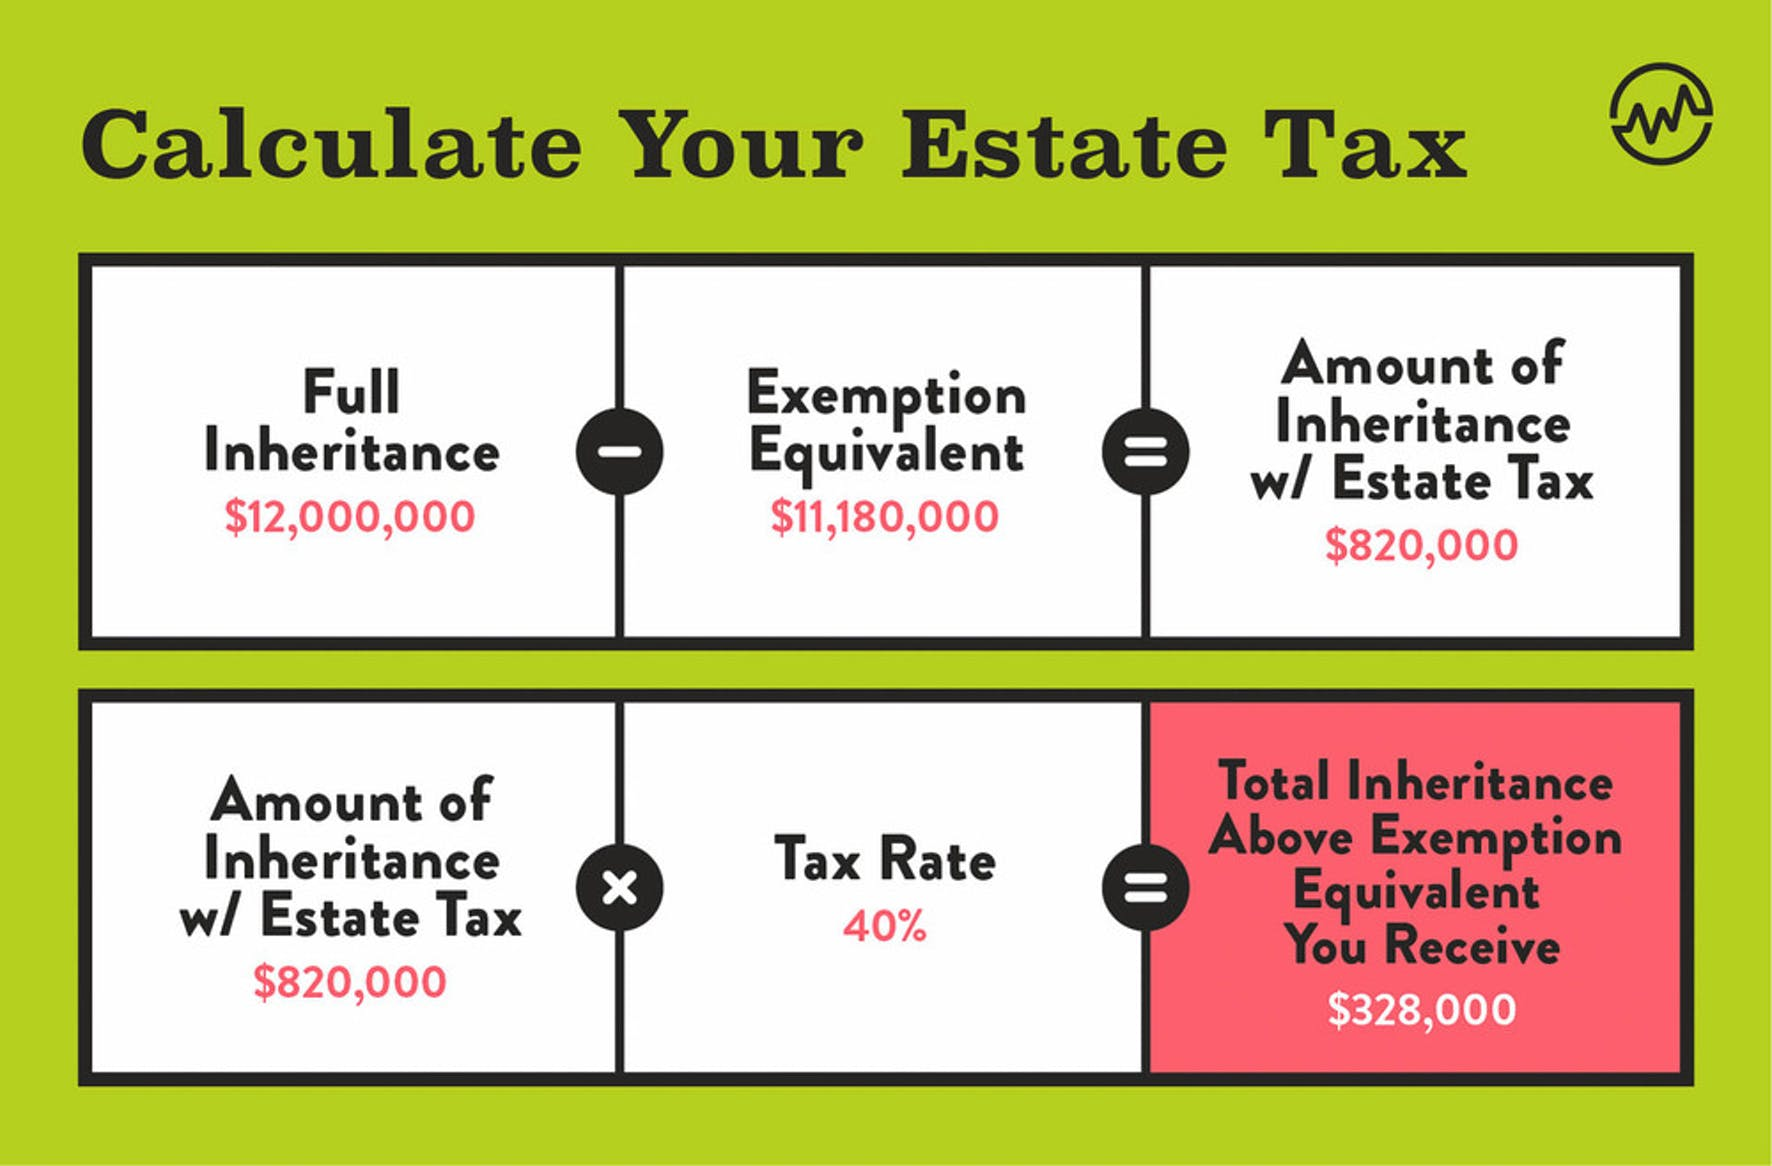 Inheritance Tax: How To Calculate Your Estate Tax